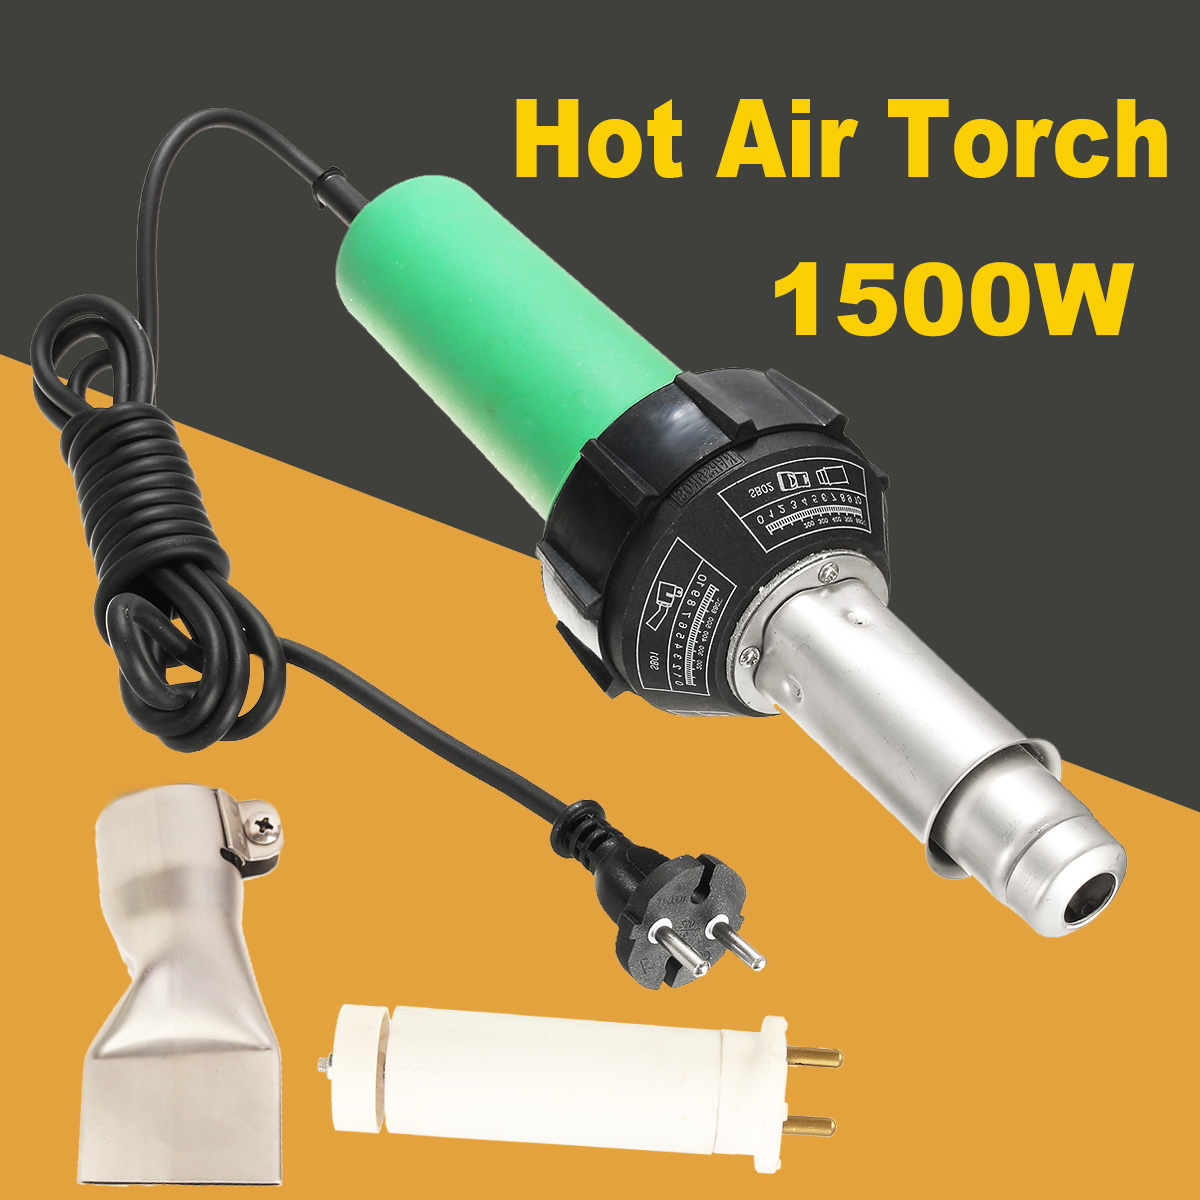 220V 1600W Welding Pistol & 2pcs Speed Nozzle & Roll Hot Air Torch Plastic Welding Heat Welding220V 1600W Welding Pistol & 2pcs Speed Nozzle & Roll Hot Air Torch Plastic Welding Heat Welding